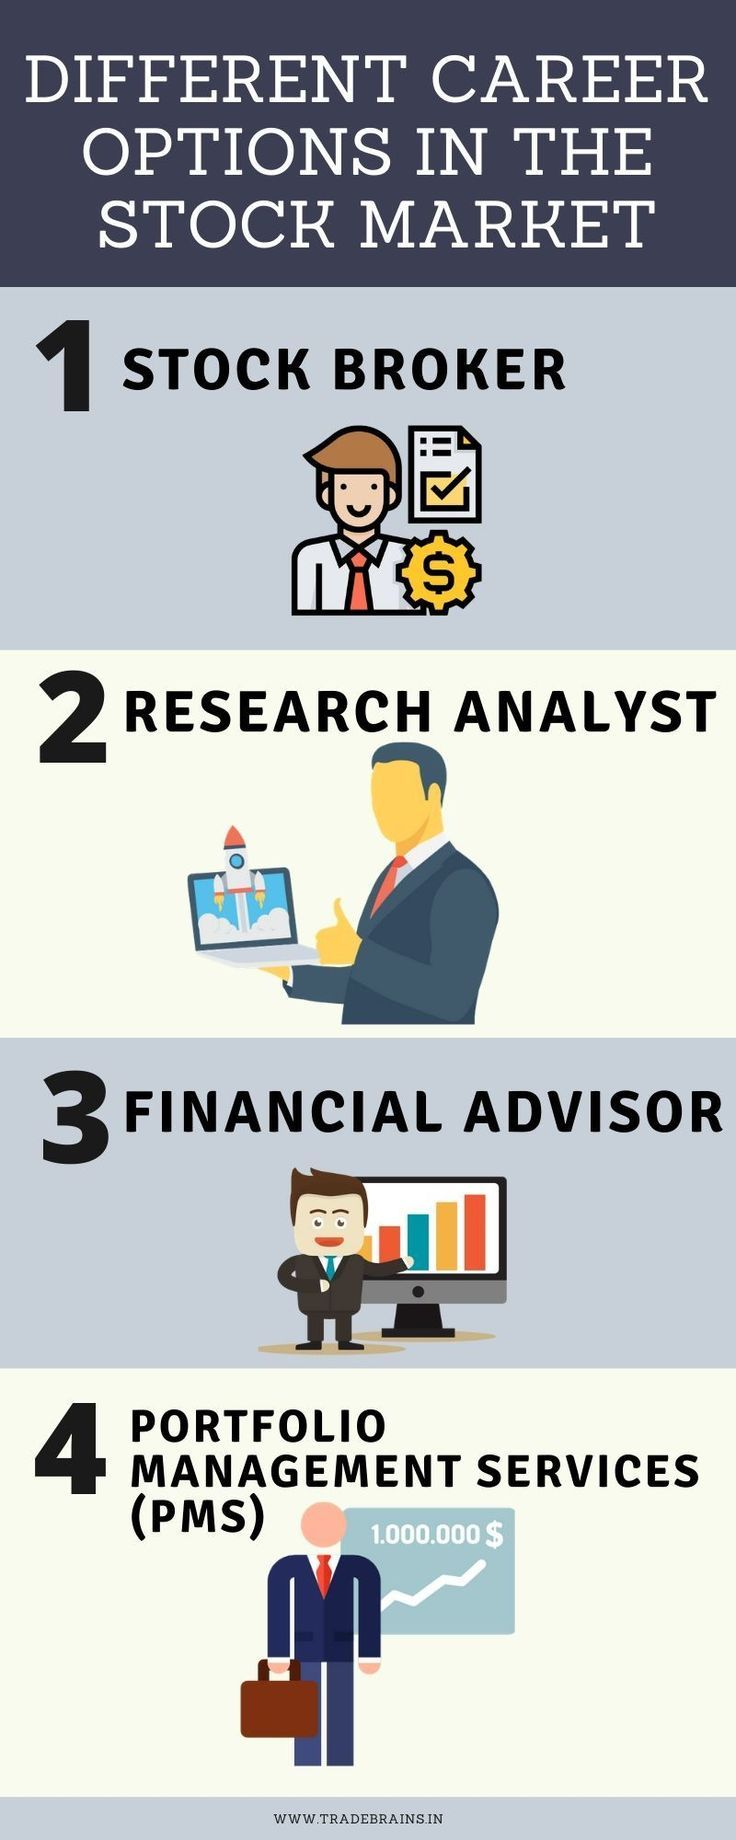 Different Career Options In The Stock Market In 2020 Investment Quotes Career Options Different Careers